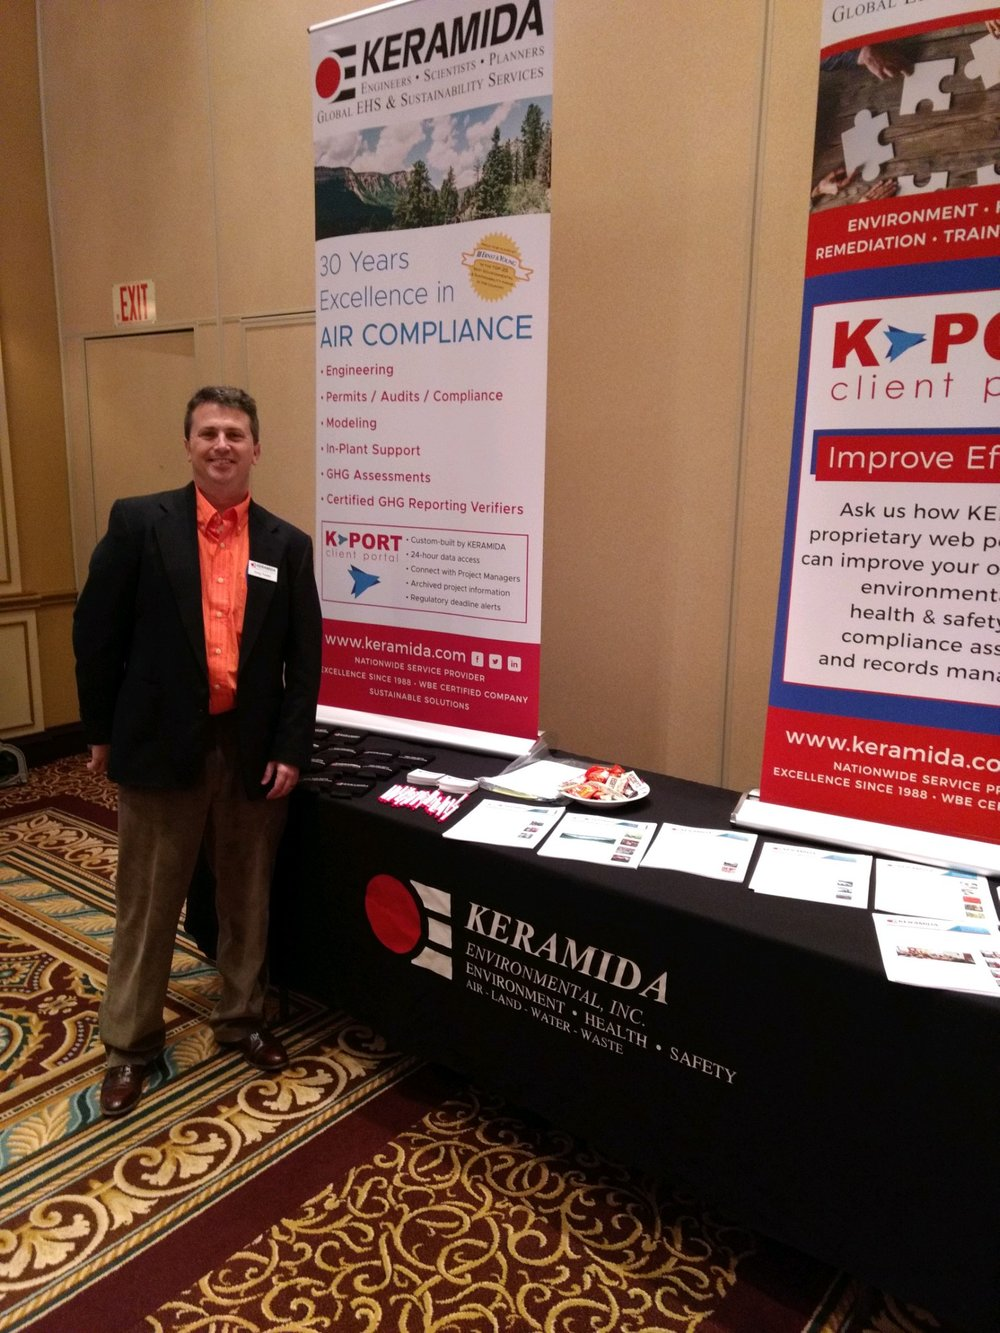 Greg Towler at KERAMIDA's booth at the conference